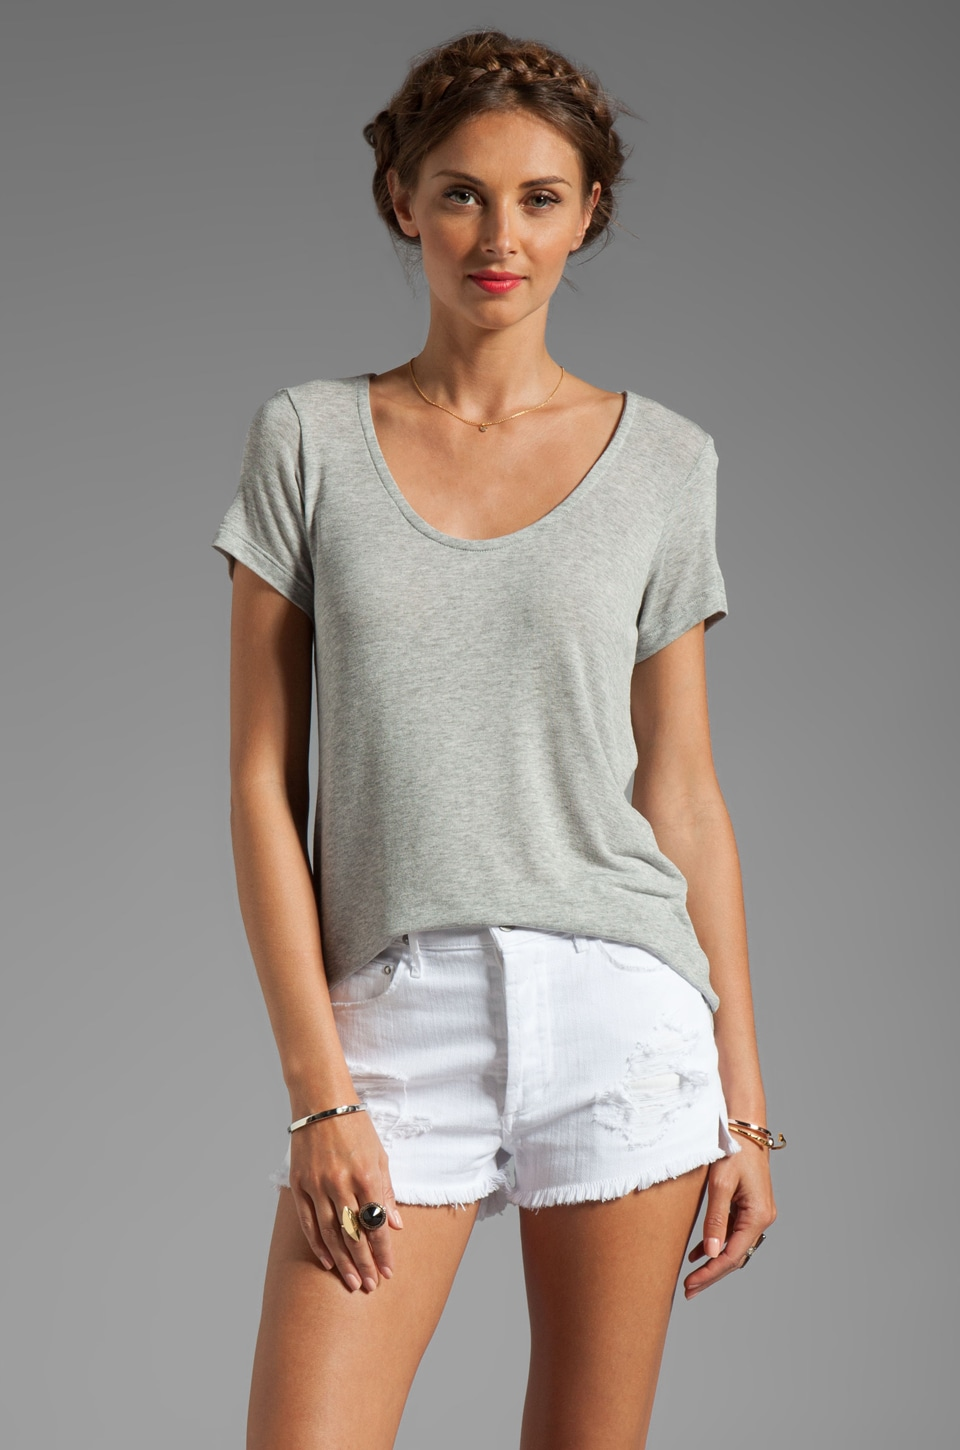 Splendid Short Sleeve Tee in Heather Grey